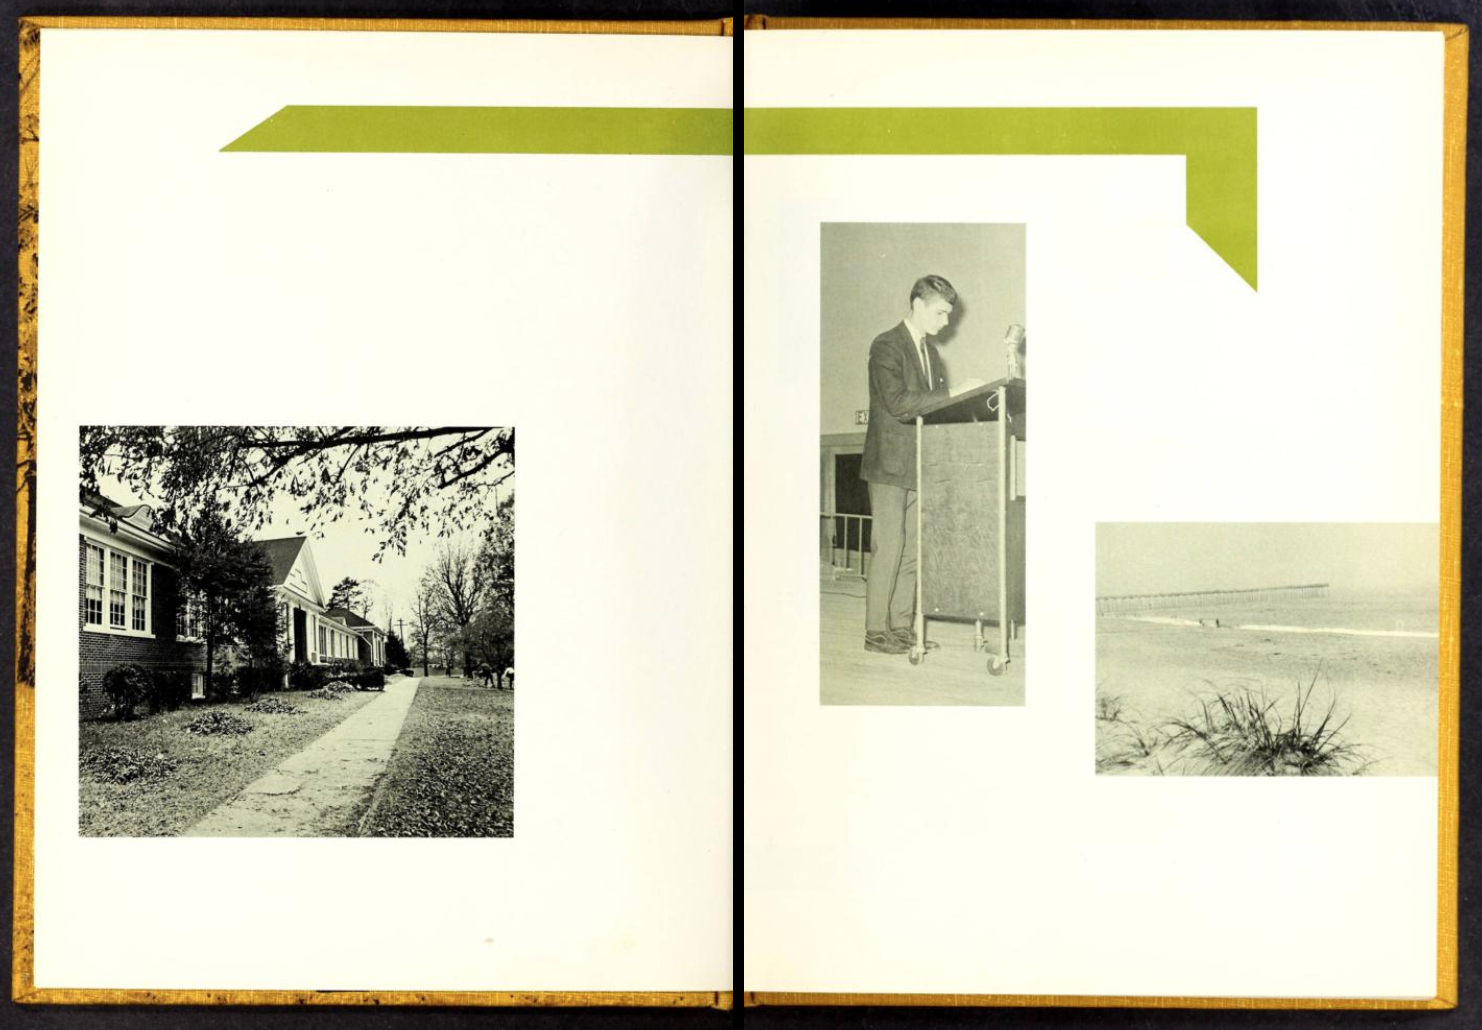 Two-page spread in the 1968 Granite Falls High School yearbook, The Granite Boulder. These pages show three photos artfully arranged around the two pages of life in Granite Falls.